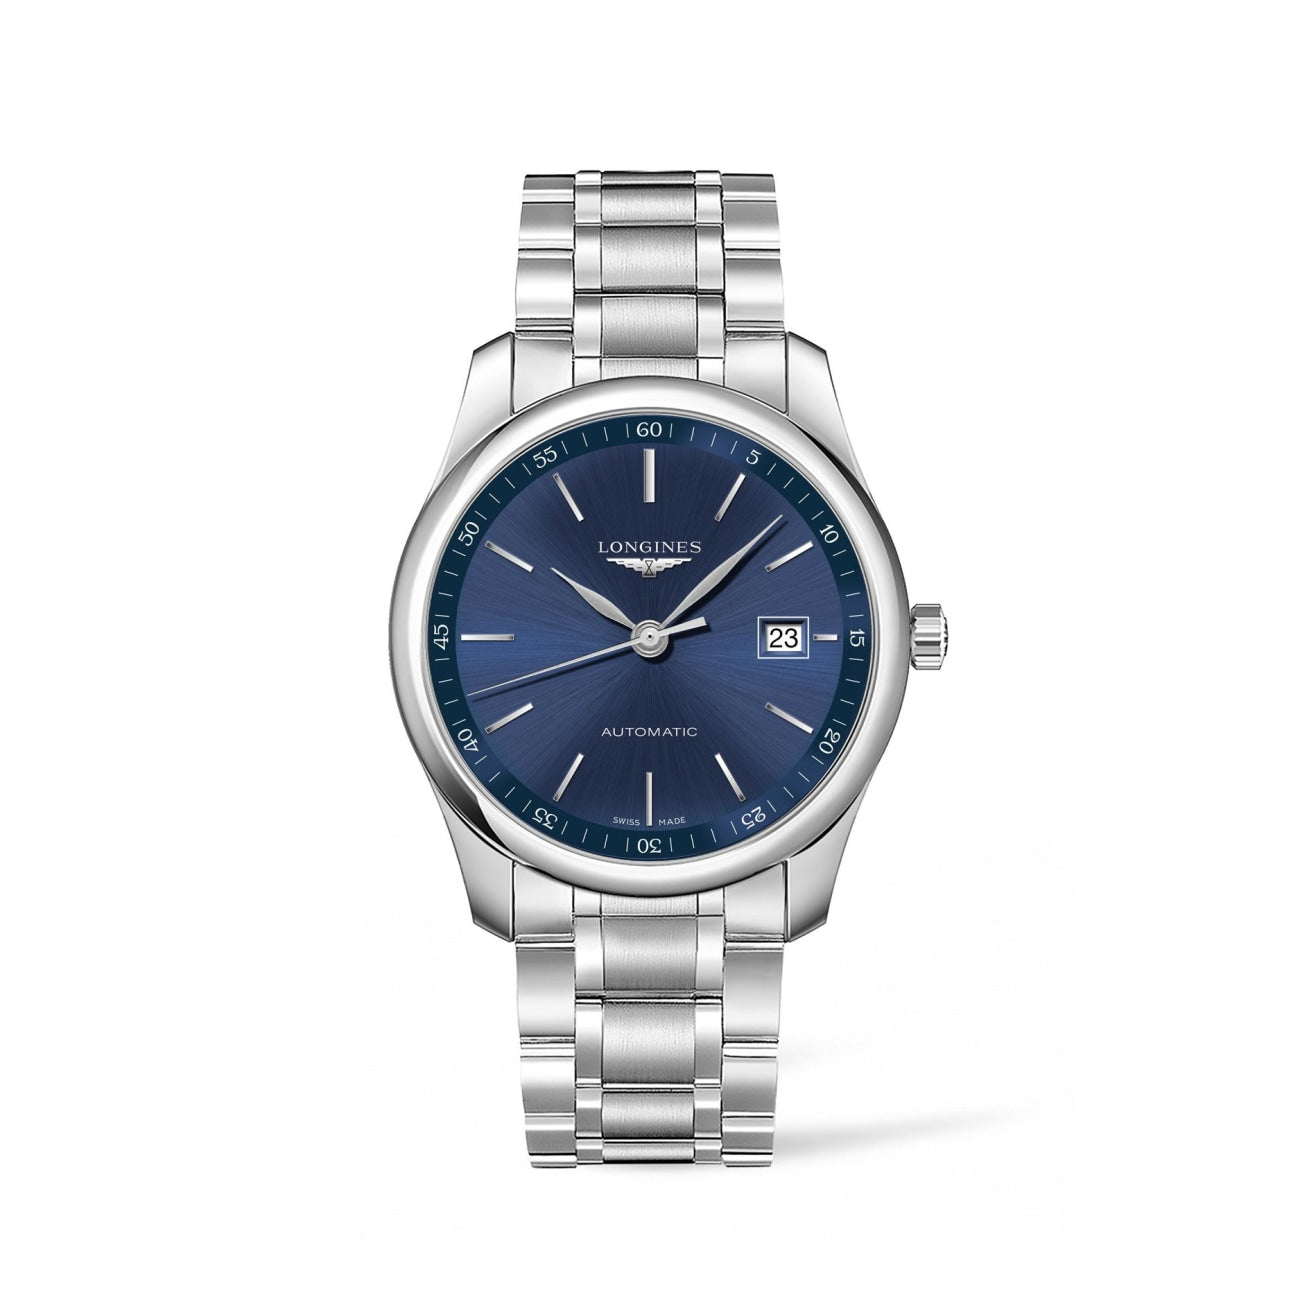 Longines Watches - Master Collection 40Mm Blue Dial Automatic | Manfredi Jewels